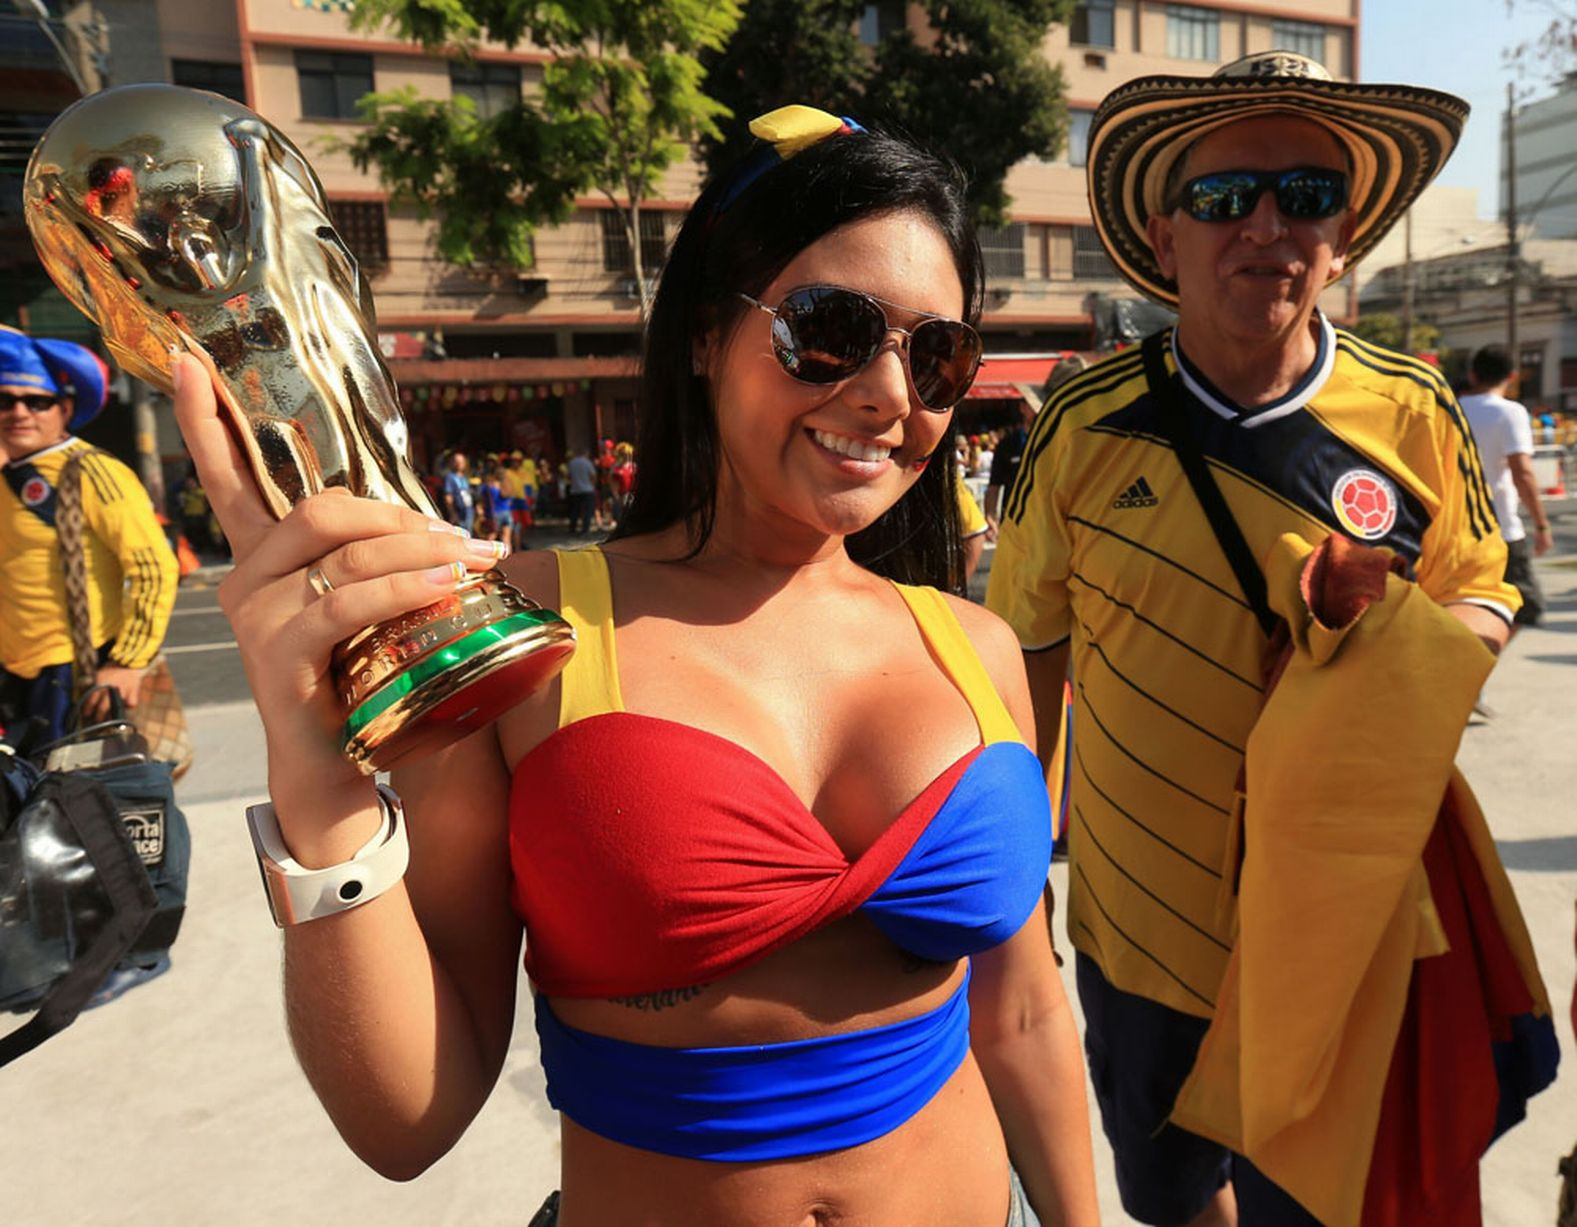 24 hot colombia fan 4 - hottest female fans 2014 world cup